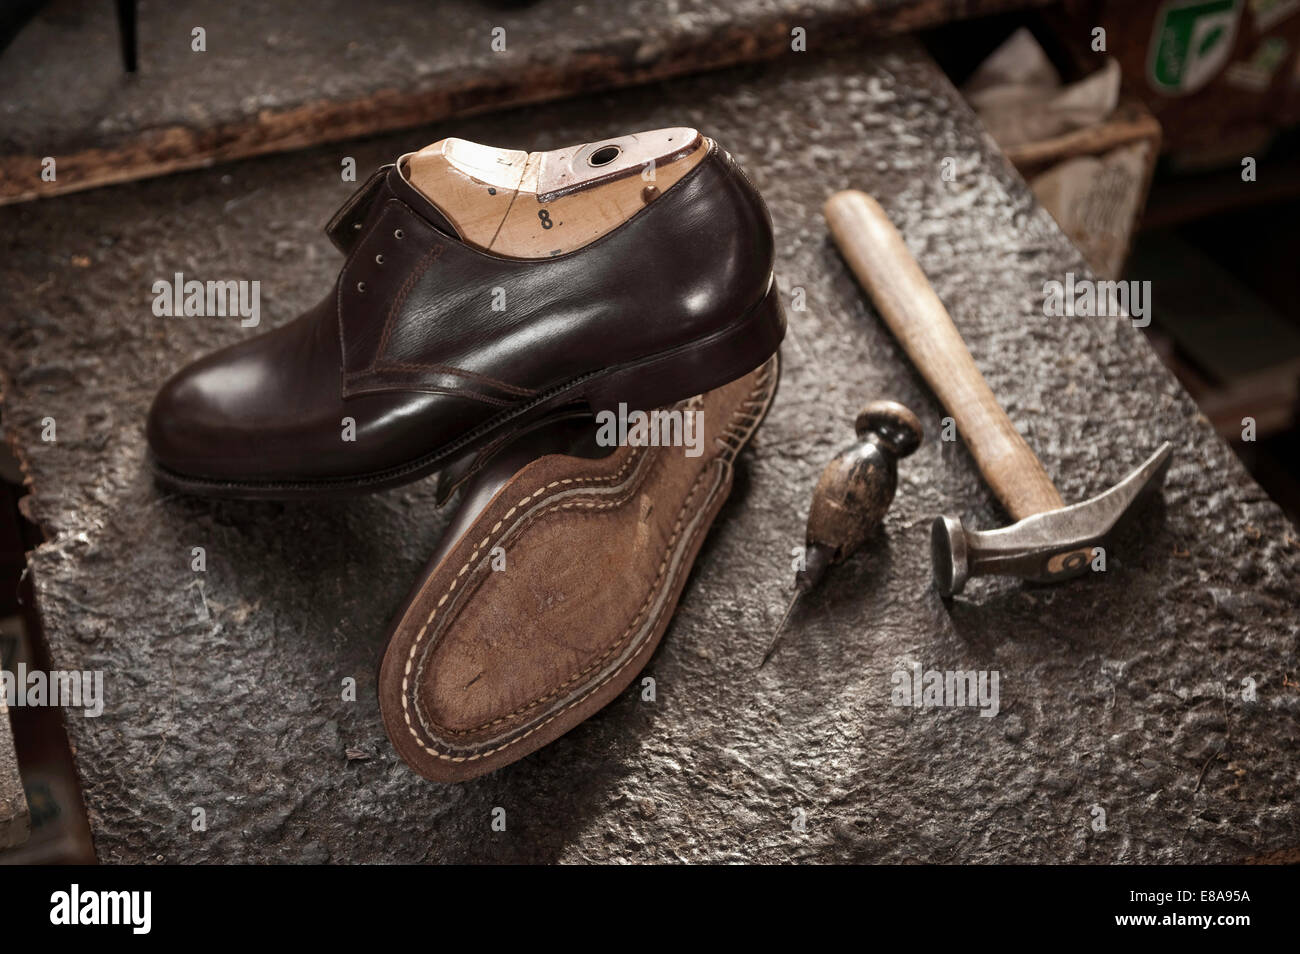 Pair of leather shoes, awl and hammer in a cobbler's shop - Stock Image